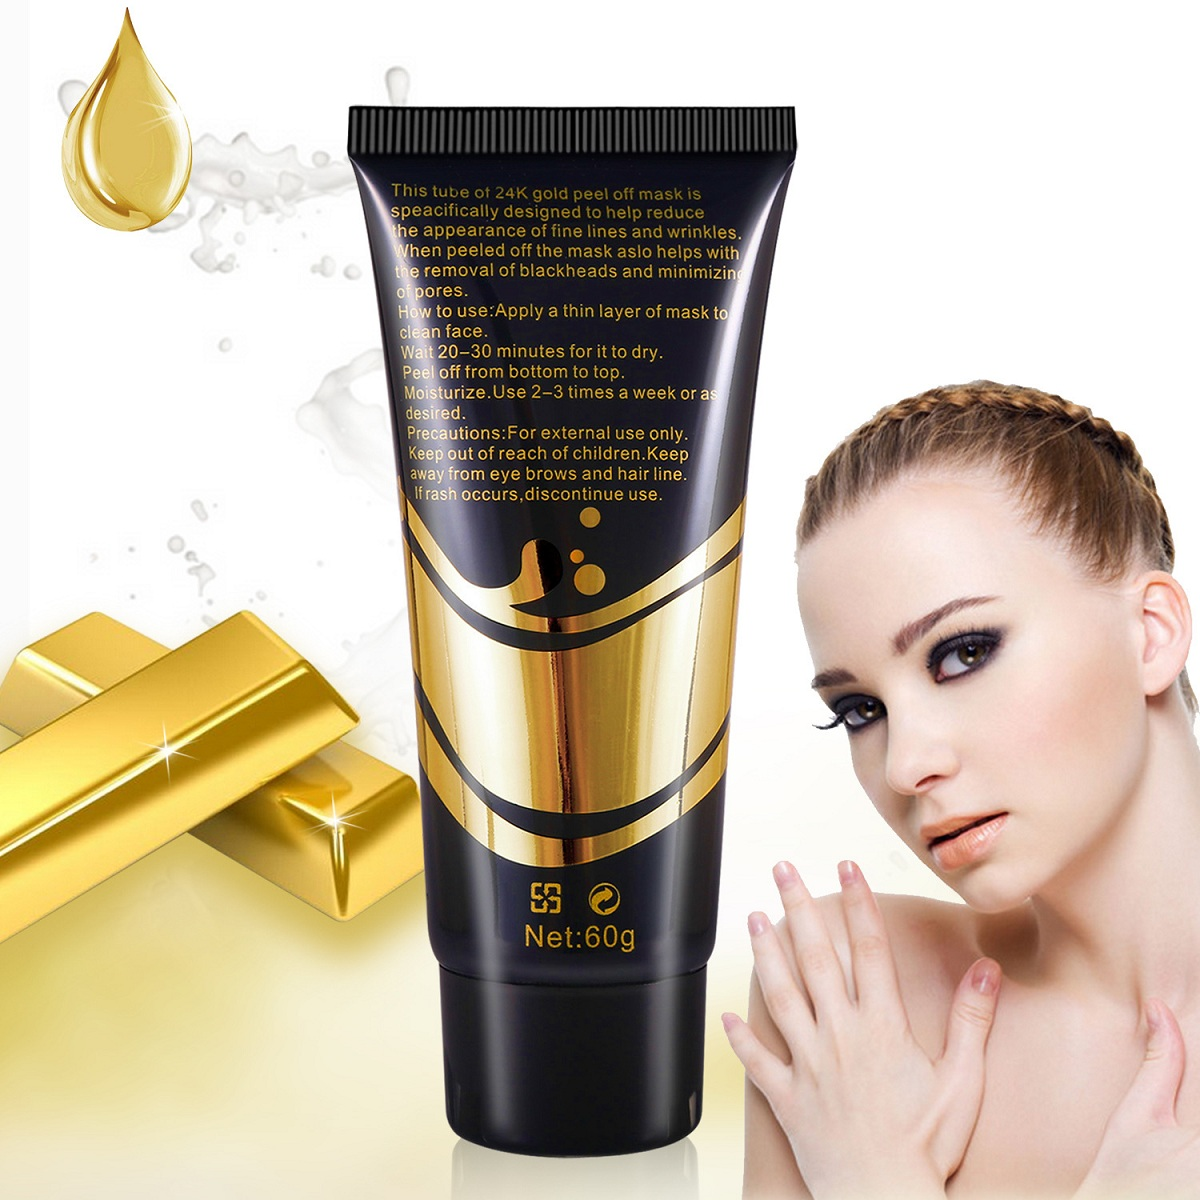 Gold Collagen Peel Off Facial Mask Blackhead Removal